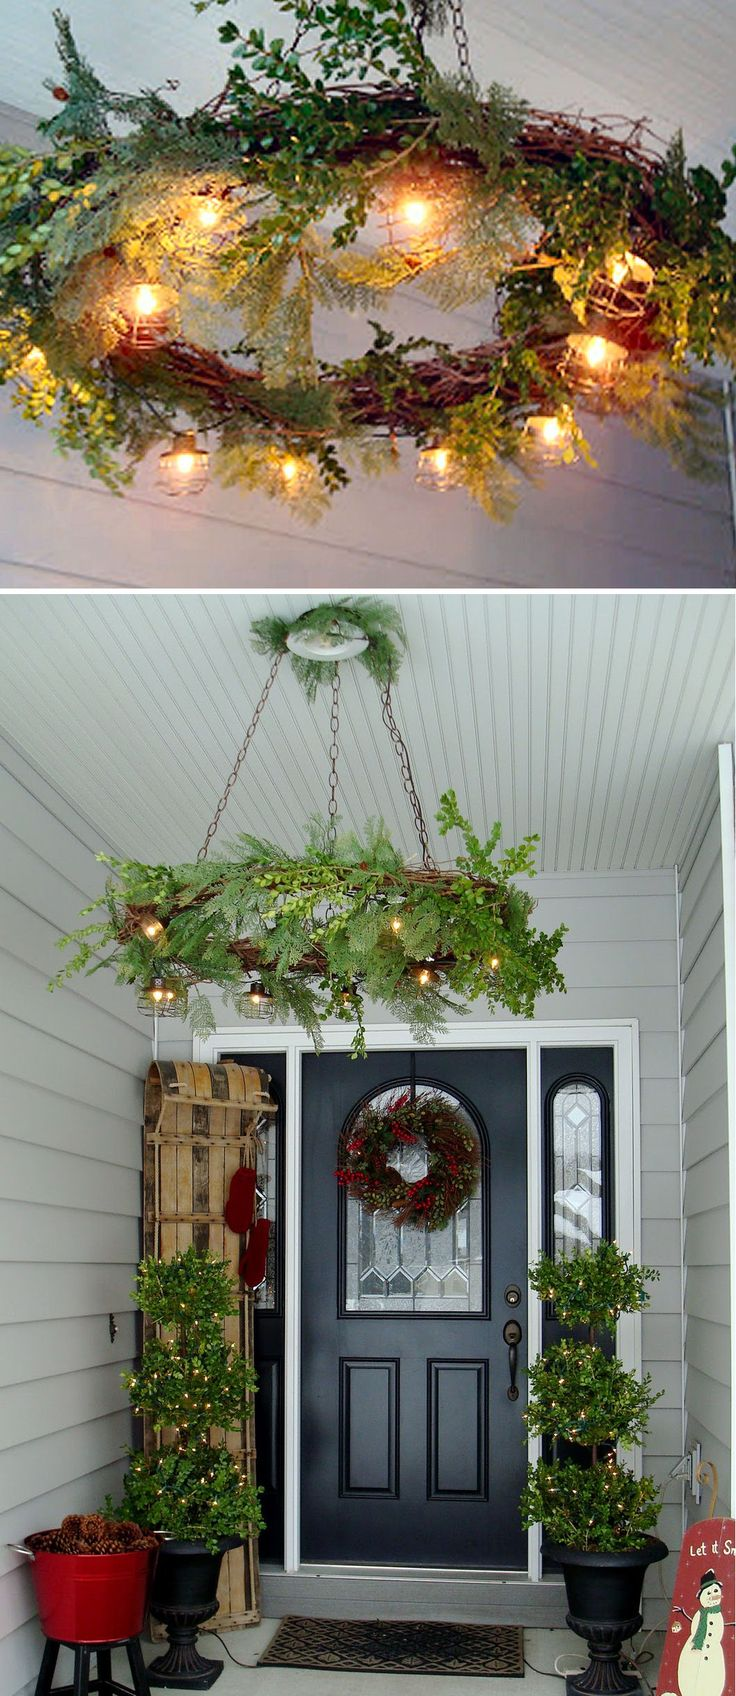 Christmas wreath hung in place of your porch light.  What a beautiful addition to your Christmas decorations!